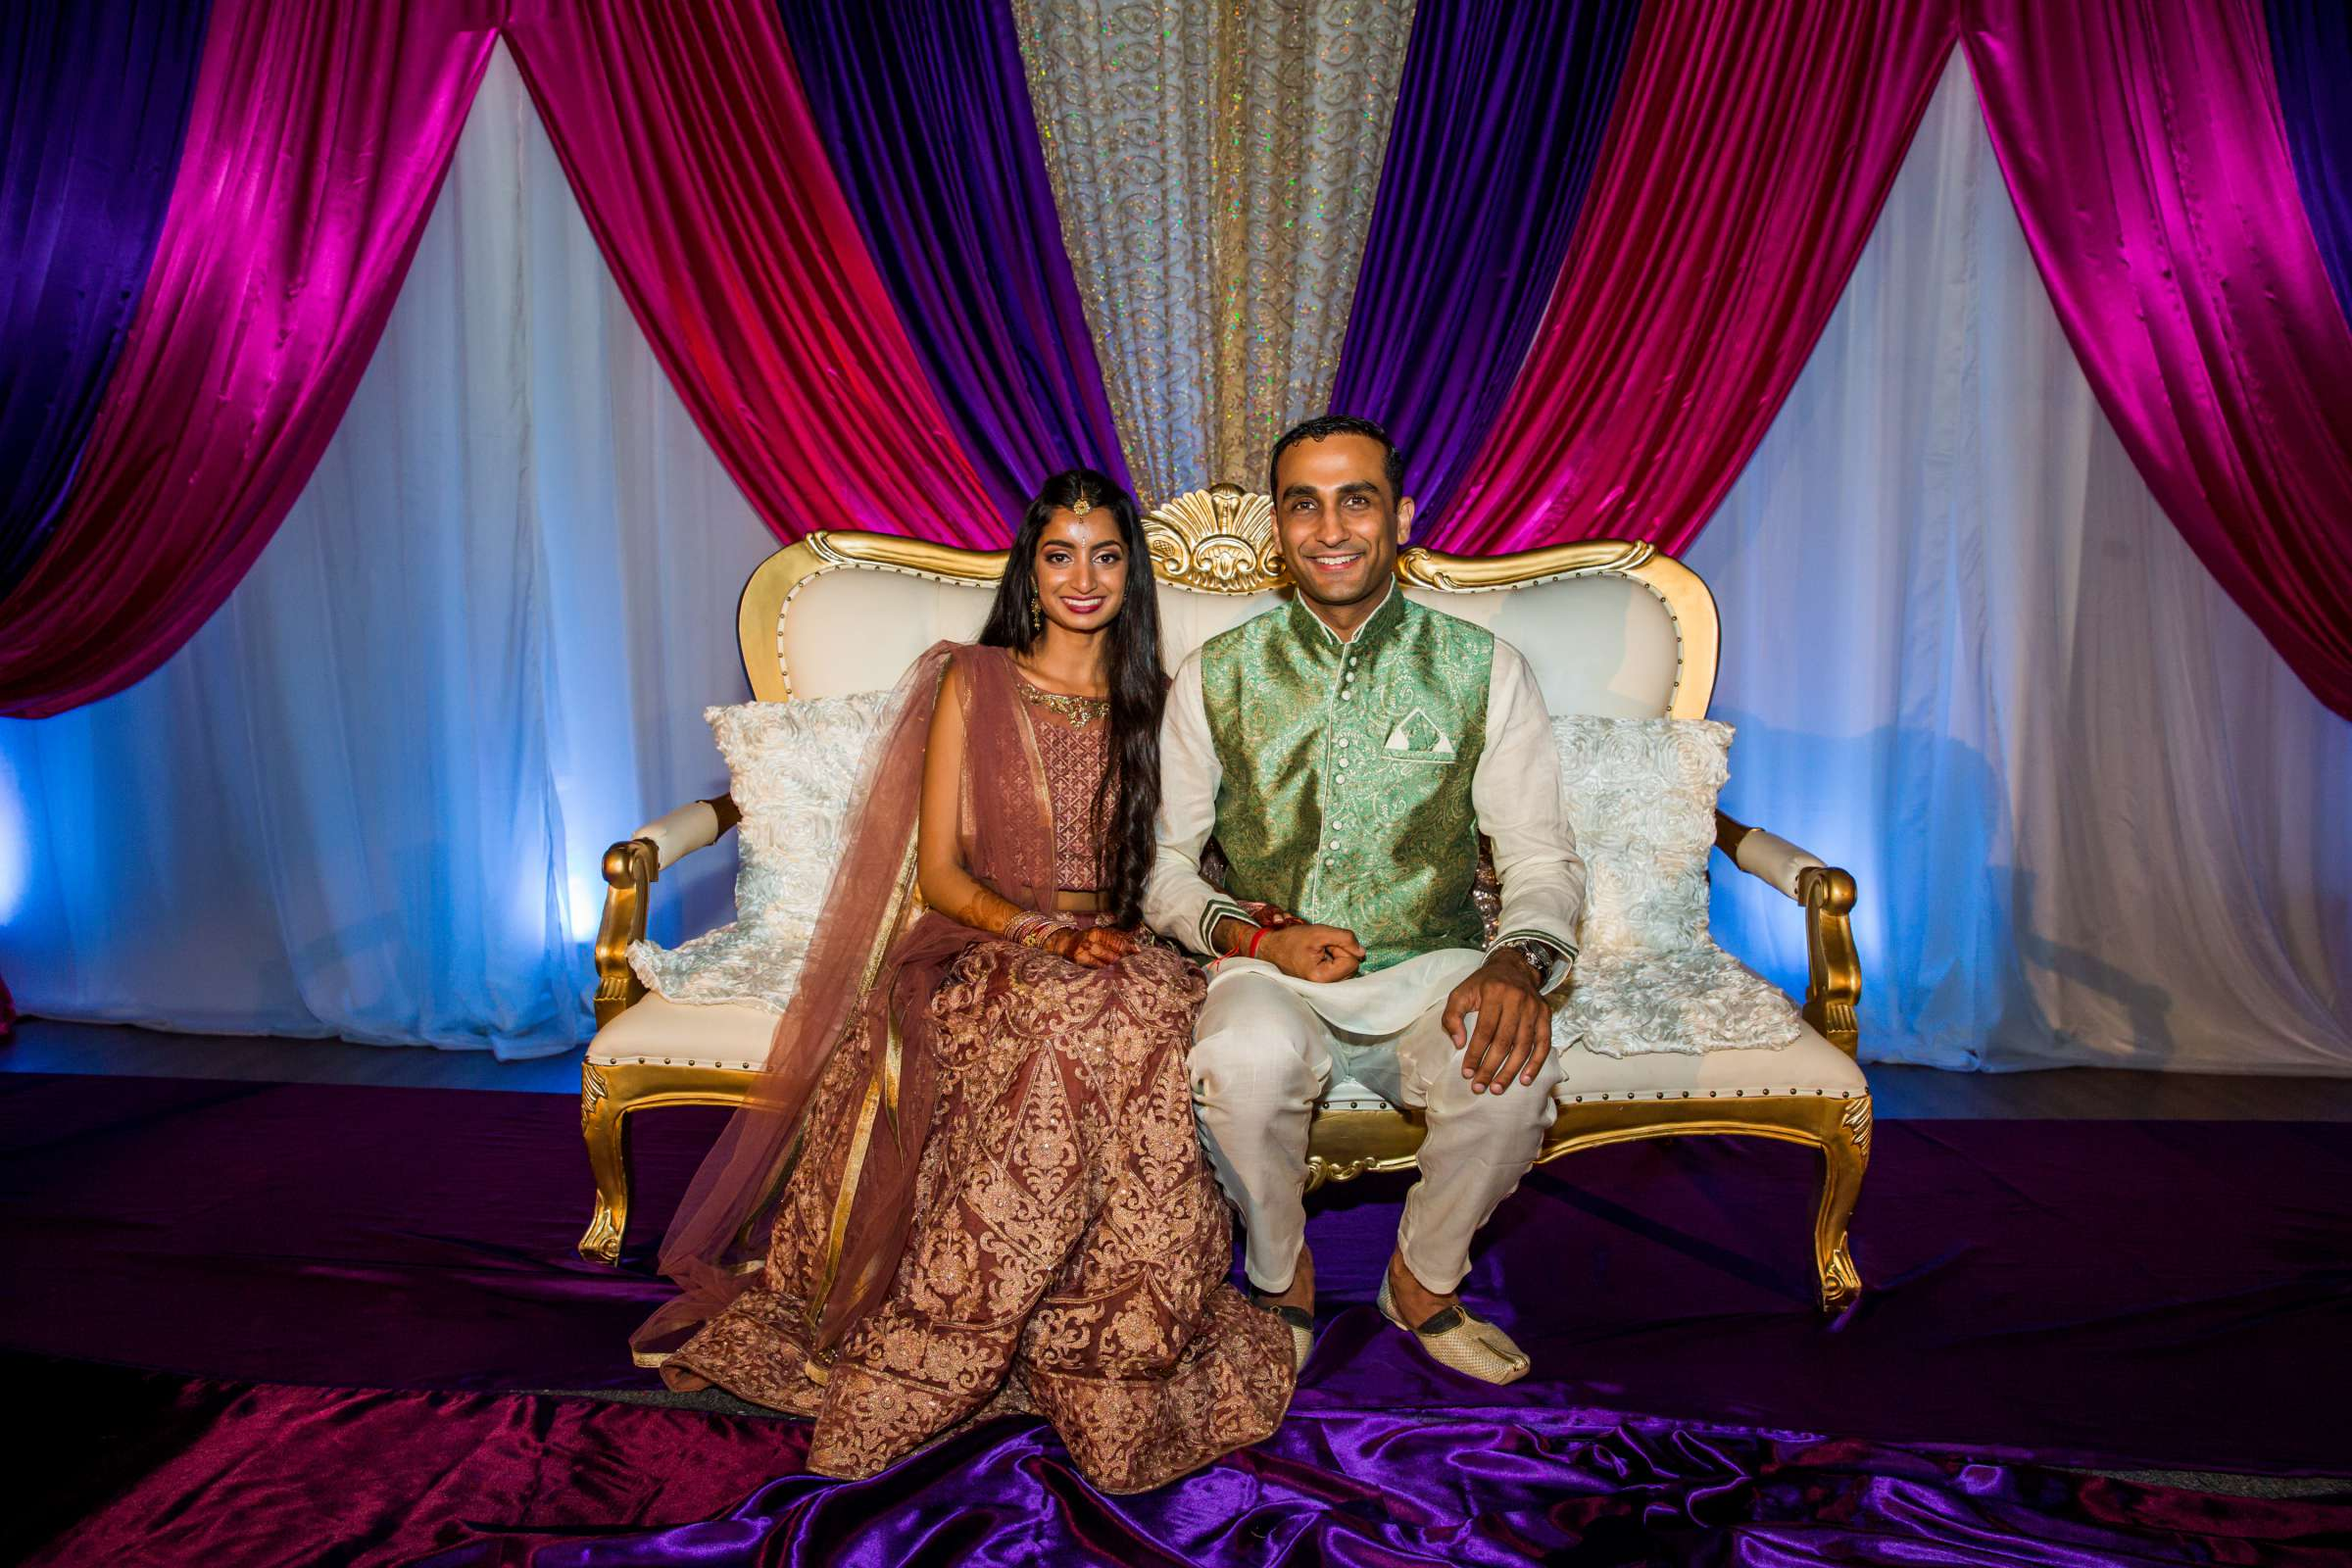 The Westin Carlsbad Resort and Spa Wedding coordinated by Shilpa Patel Events, Ami and Amit Wedding Photo #128 by True Photography